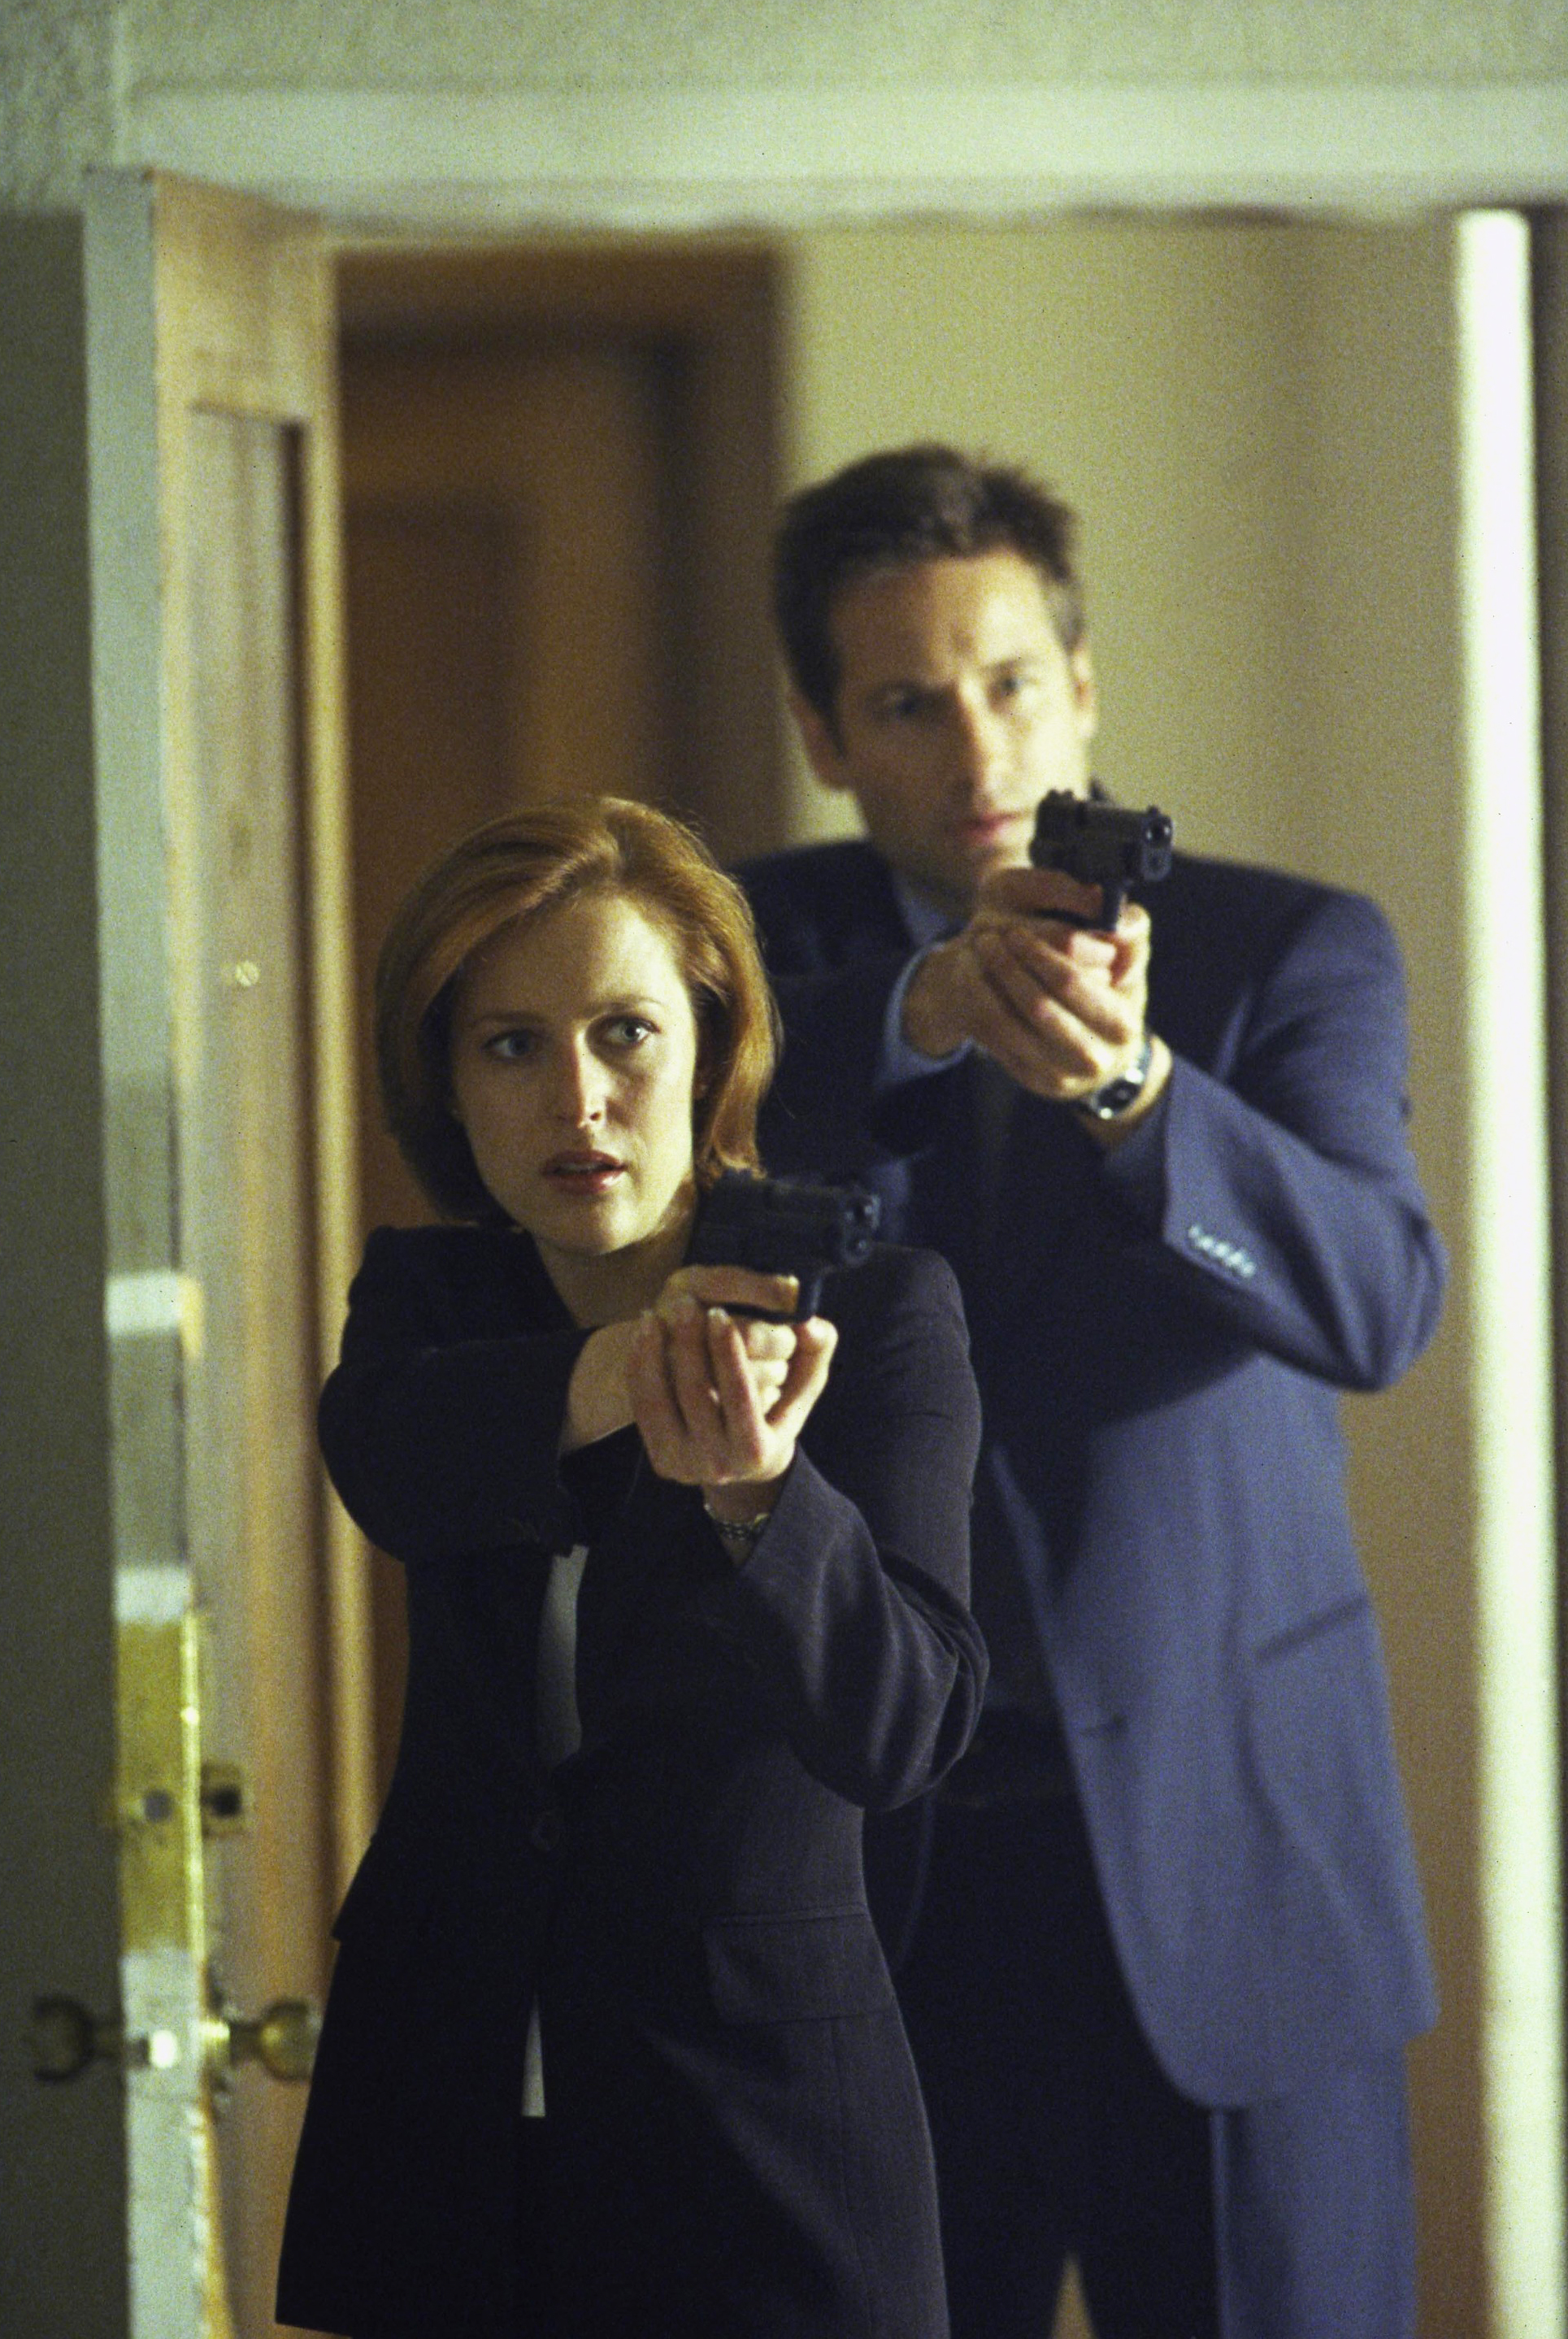 Gillian Anderson and David Duchovny are seen in <i>The X-Files</i> in 1999.